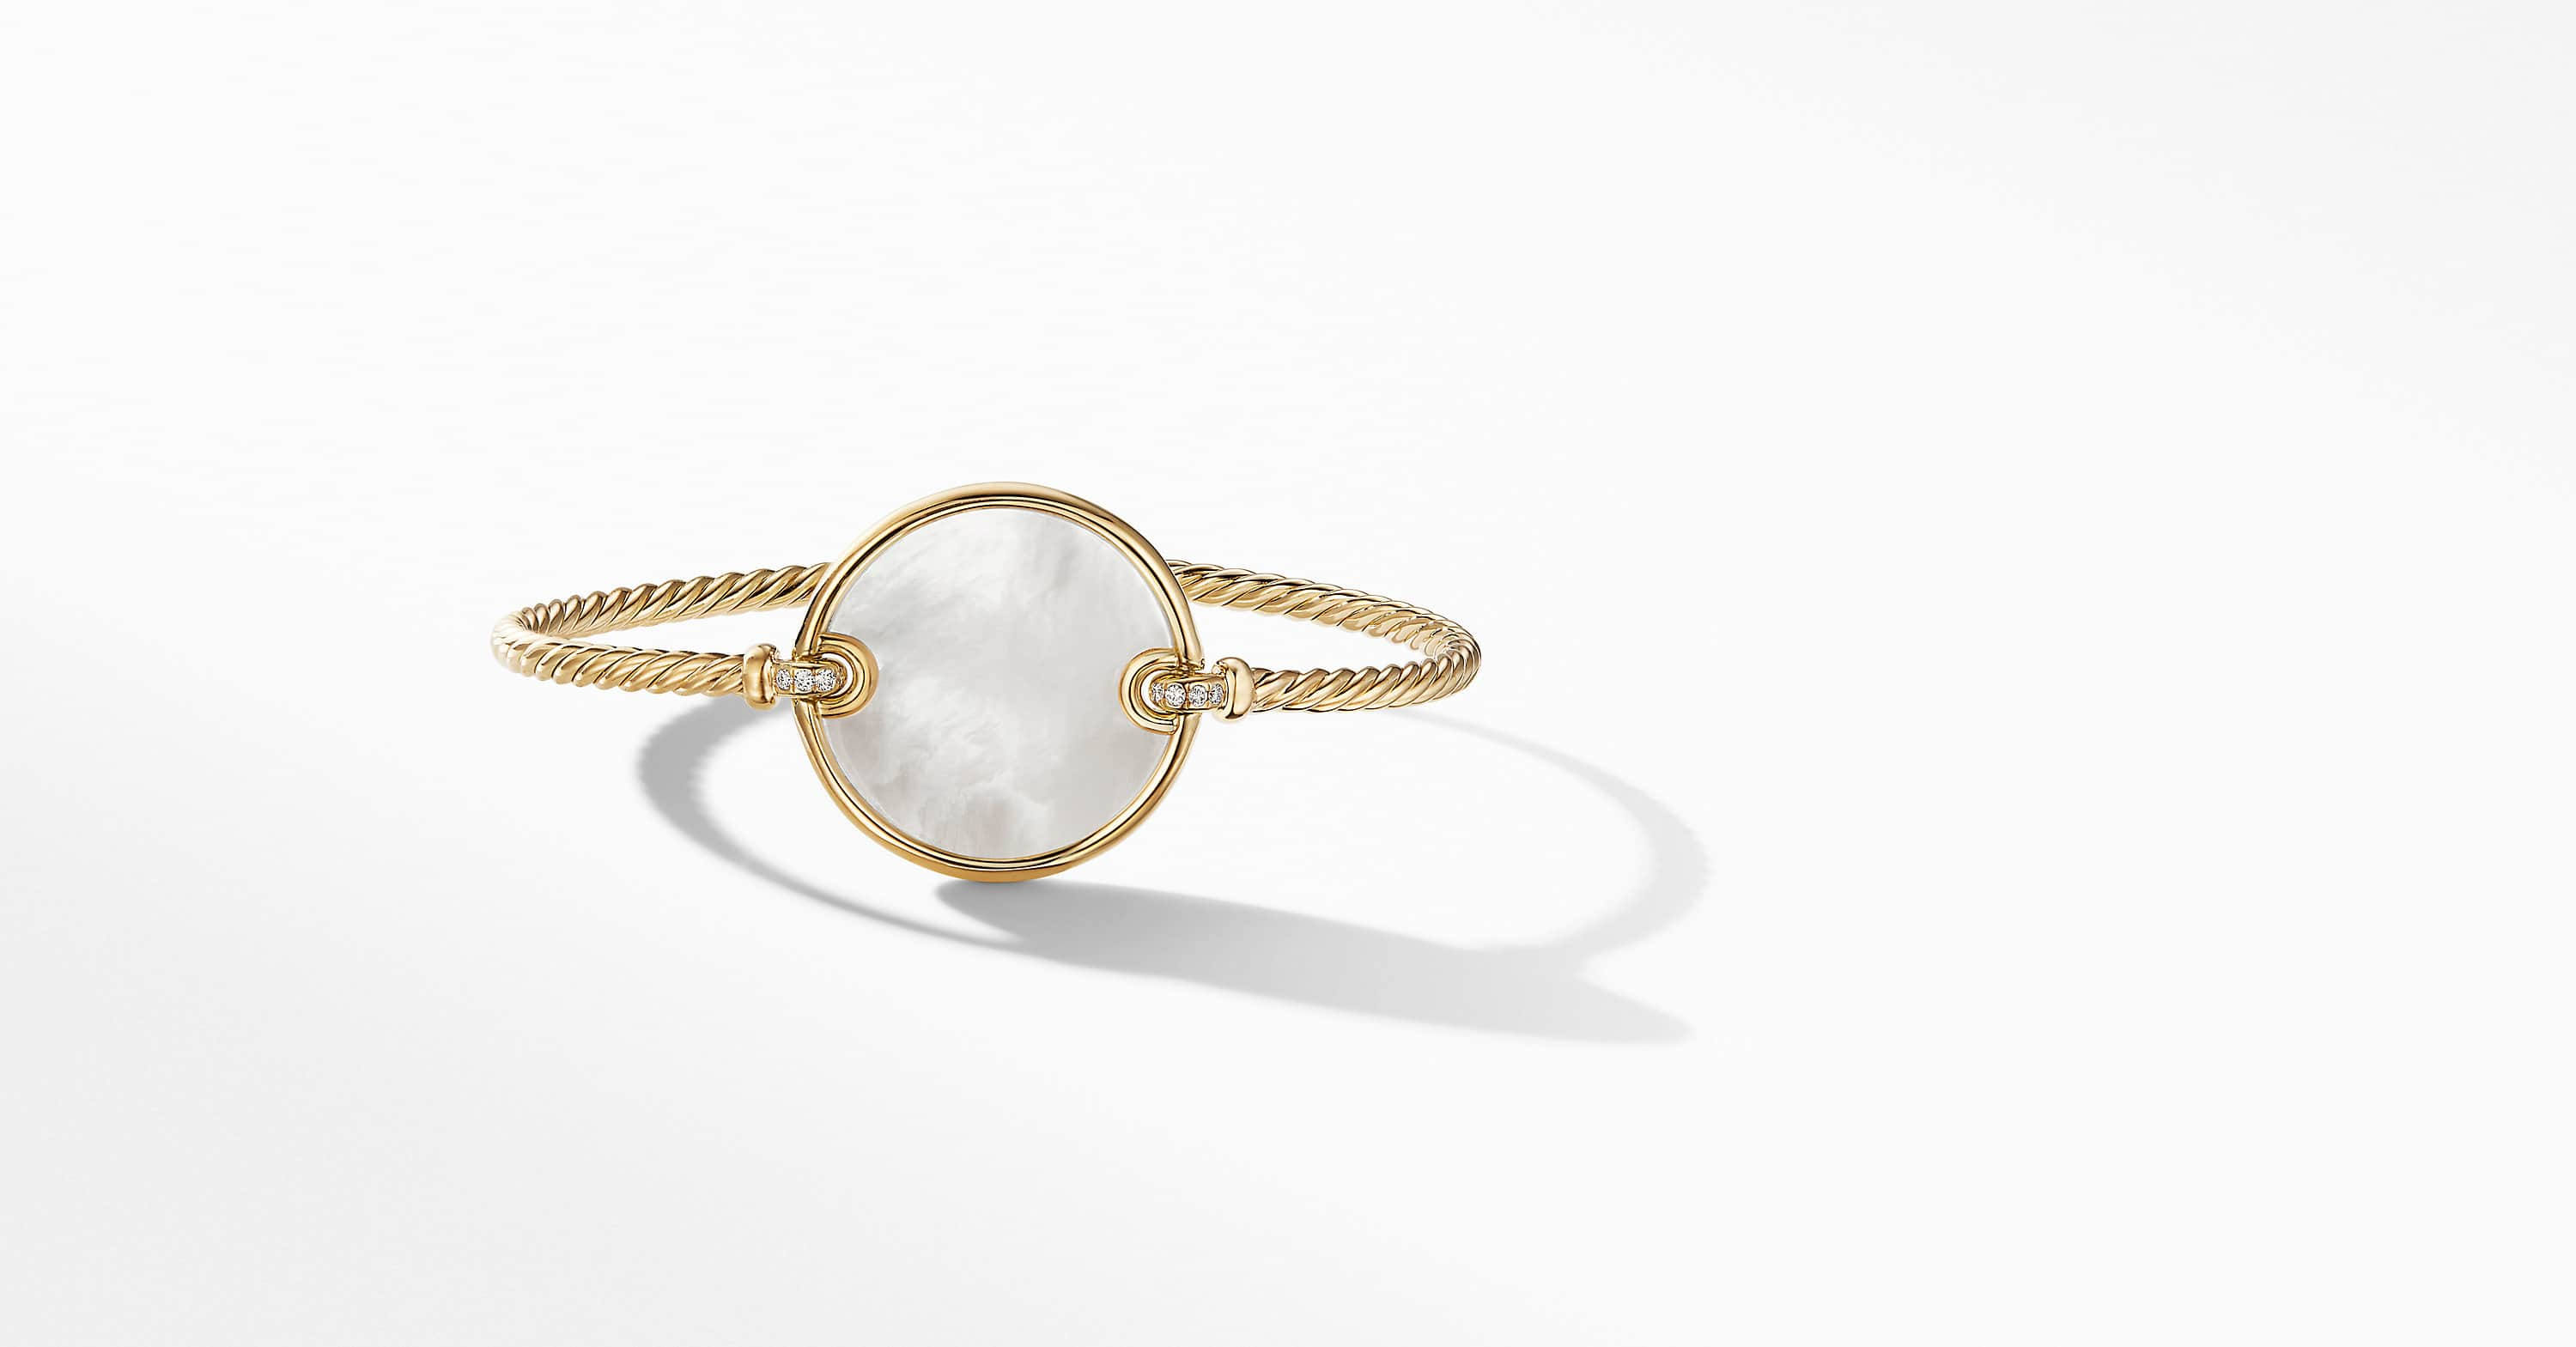 DY Elements Bracelet in 18K Yellow Gold with Diamonds, 22mm